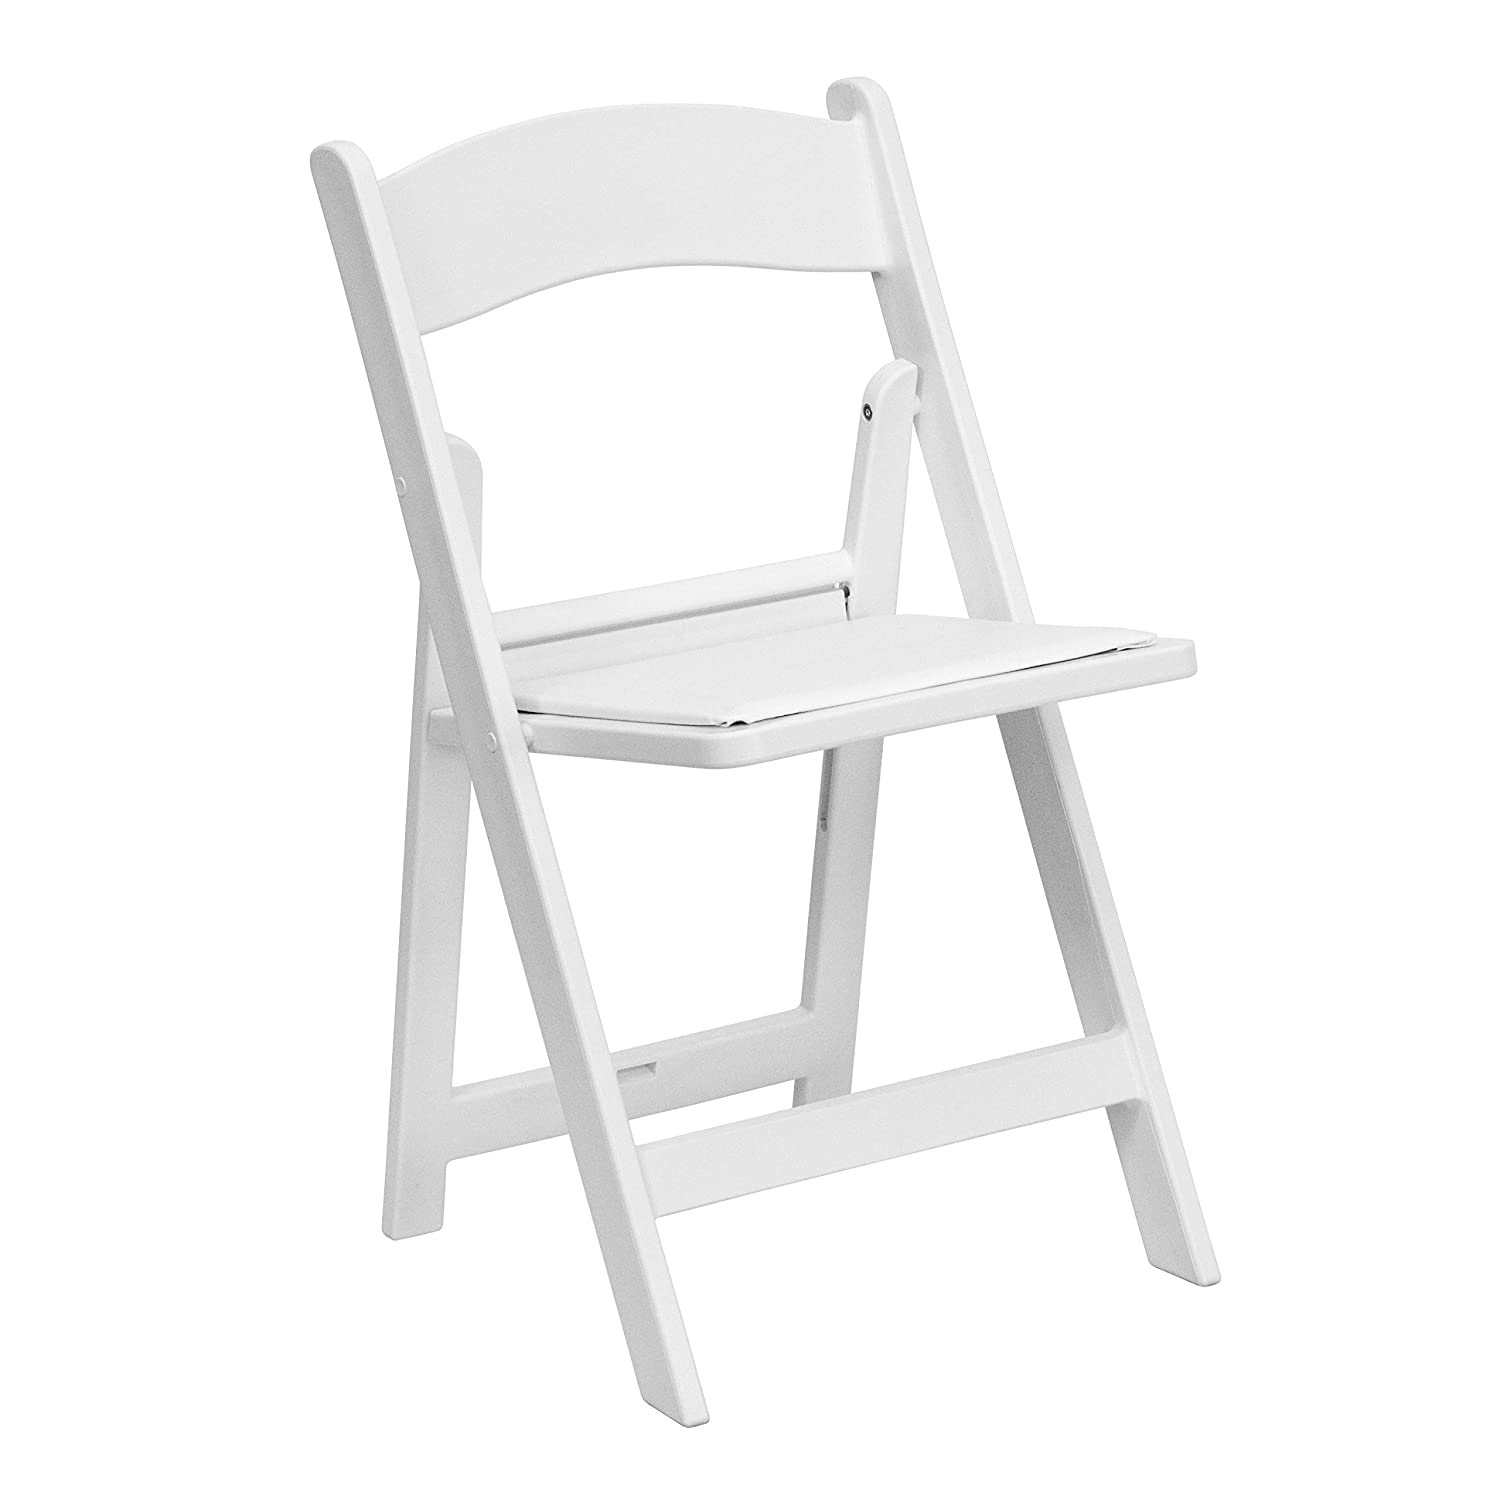 Astounding Flash Furniture Hercules Series 1000 Lb Capacity White Resin Folding Chair With White Vinyl Padded Seat Squirreltailoven Fun Painted Chair Ideas Images Squirreltailovenorg